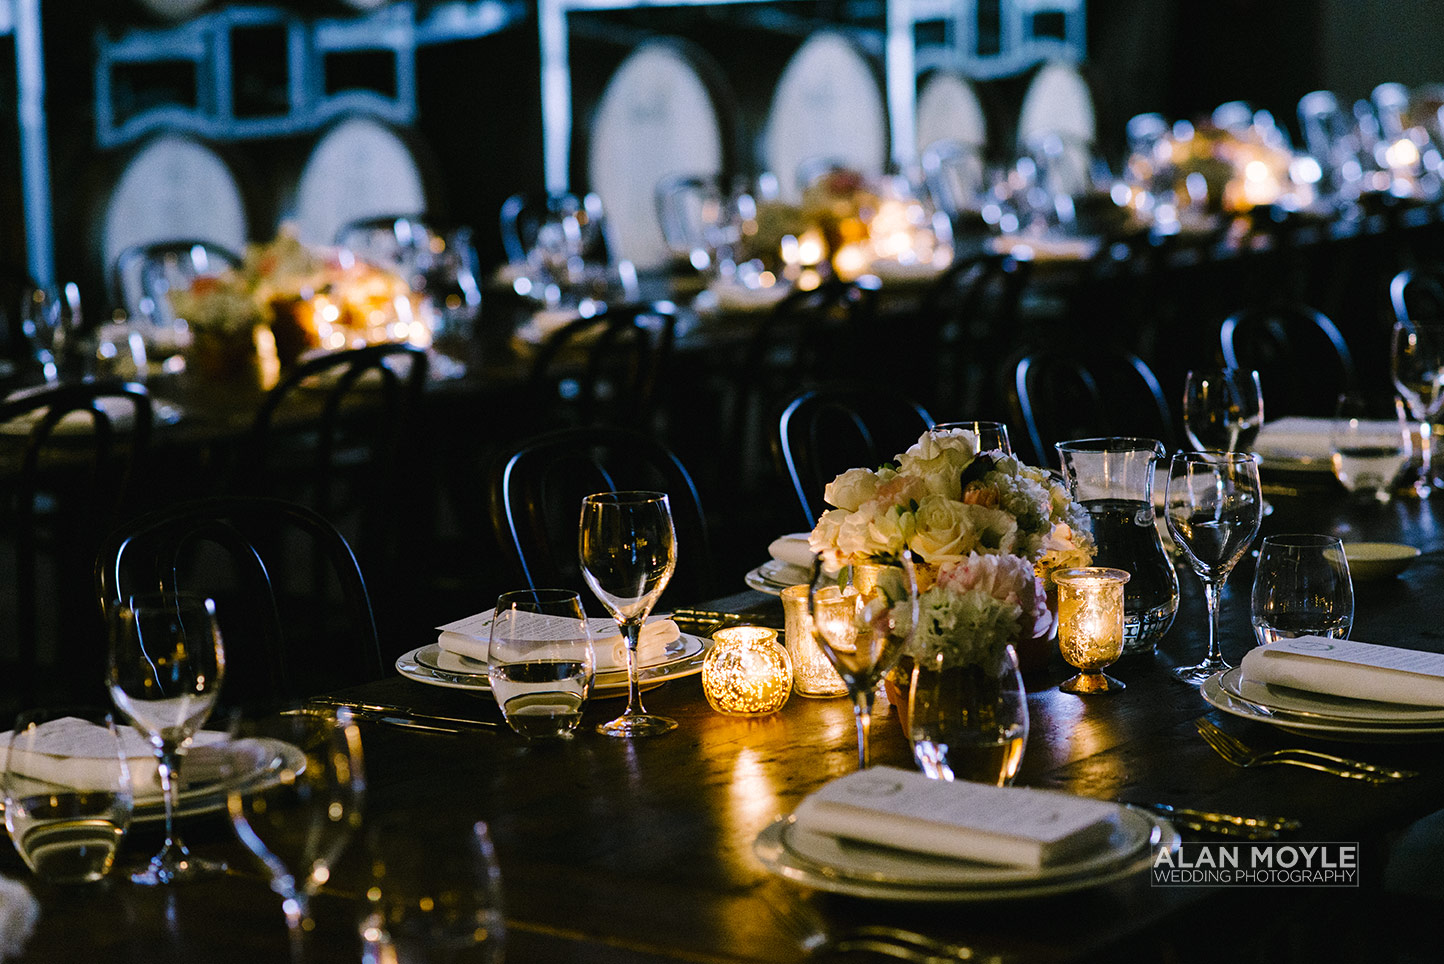 1405austin-285weddings_of_desire_melbourne_styling_event_geelong_alan_moyle_vineyard_winery_caligraphy_laura_sprout_hire_bayside.jpg